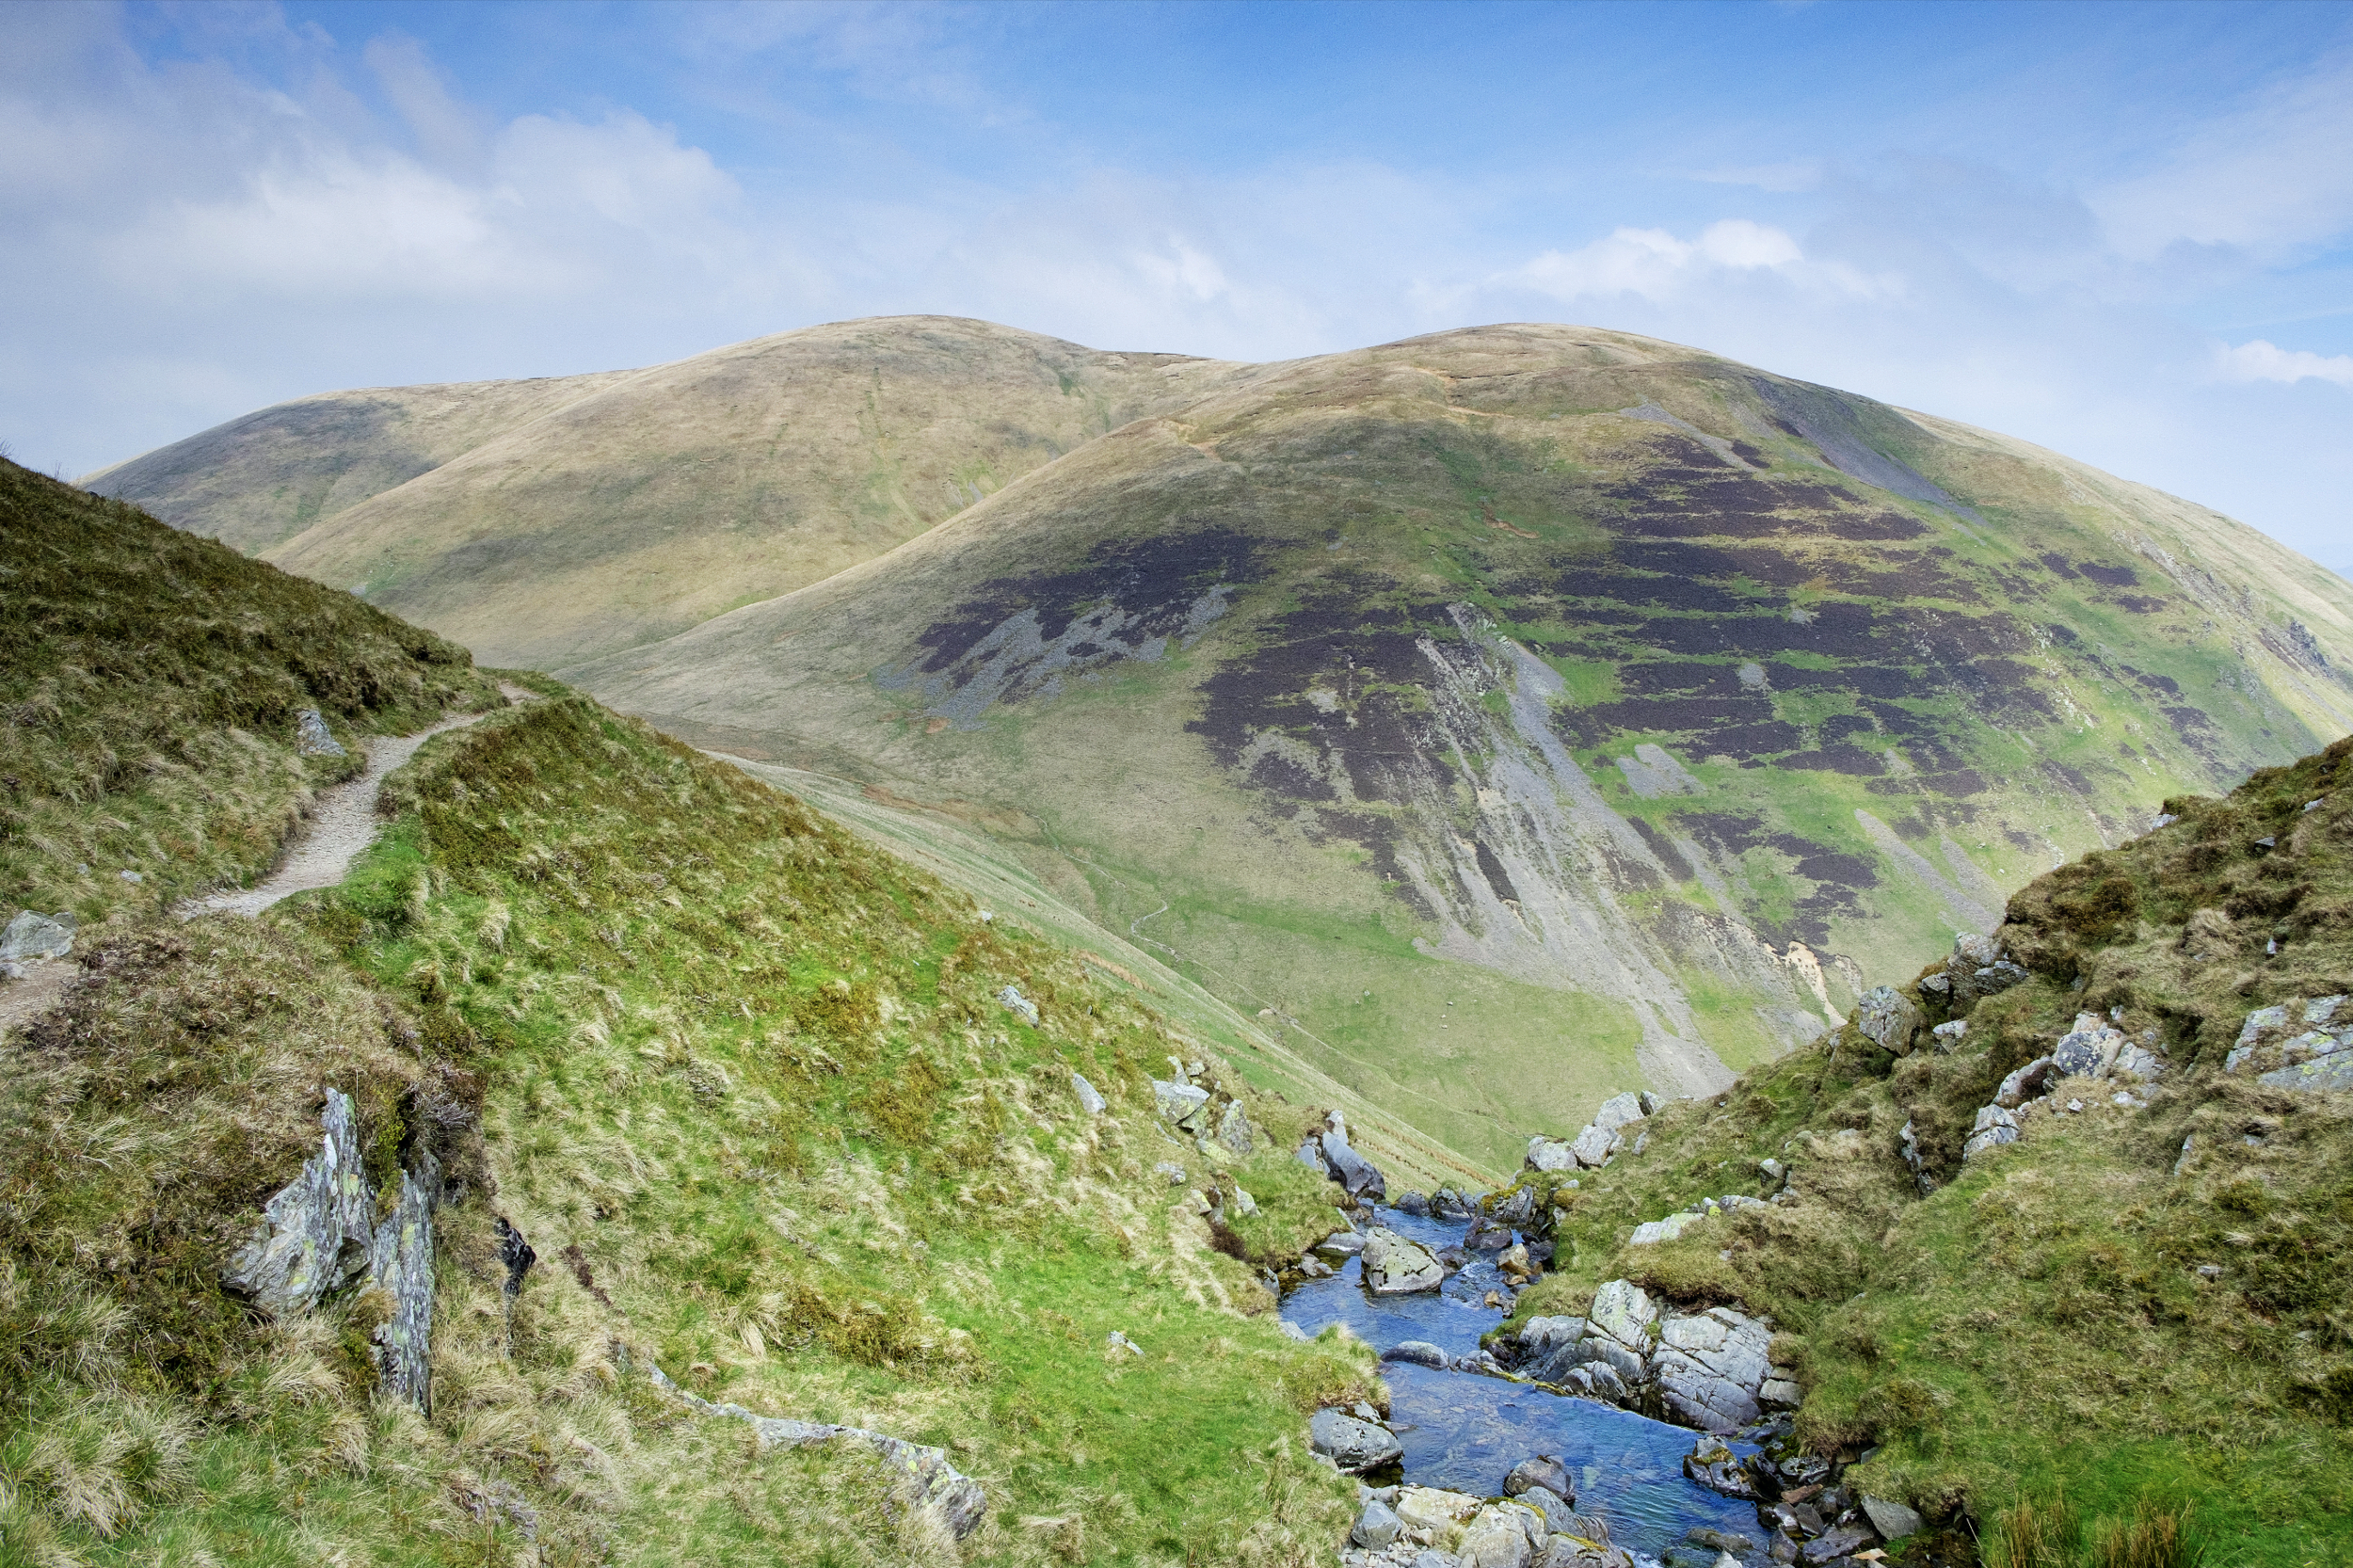 At the top of Cautley Spout, looking north to Yarlside.